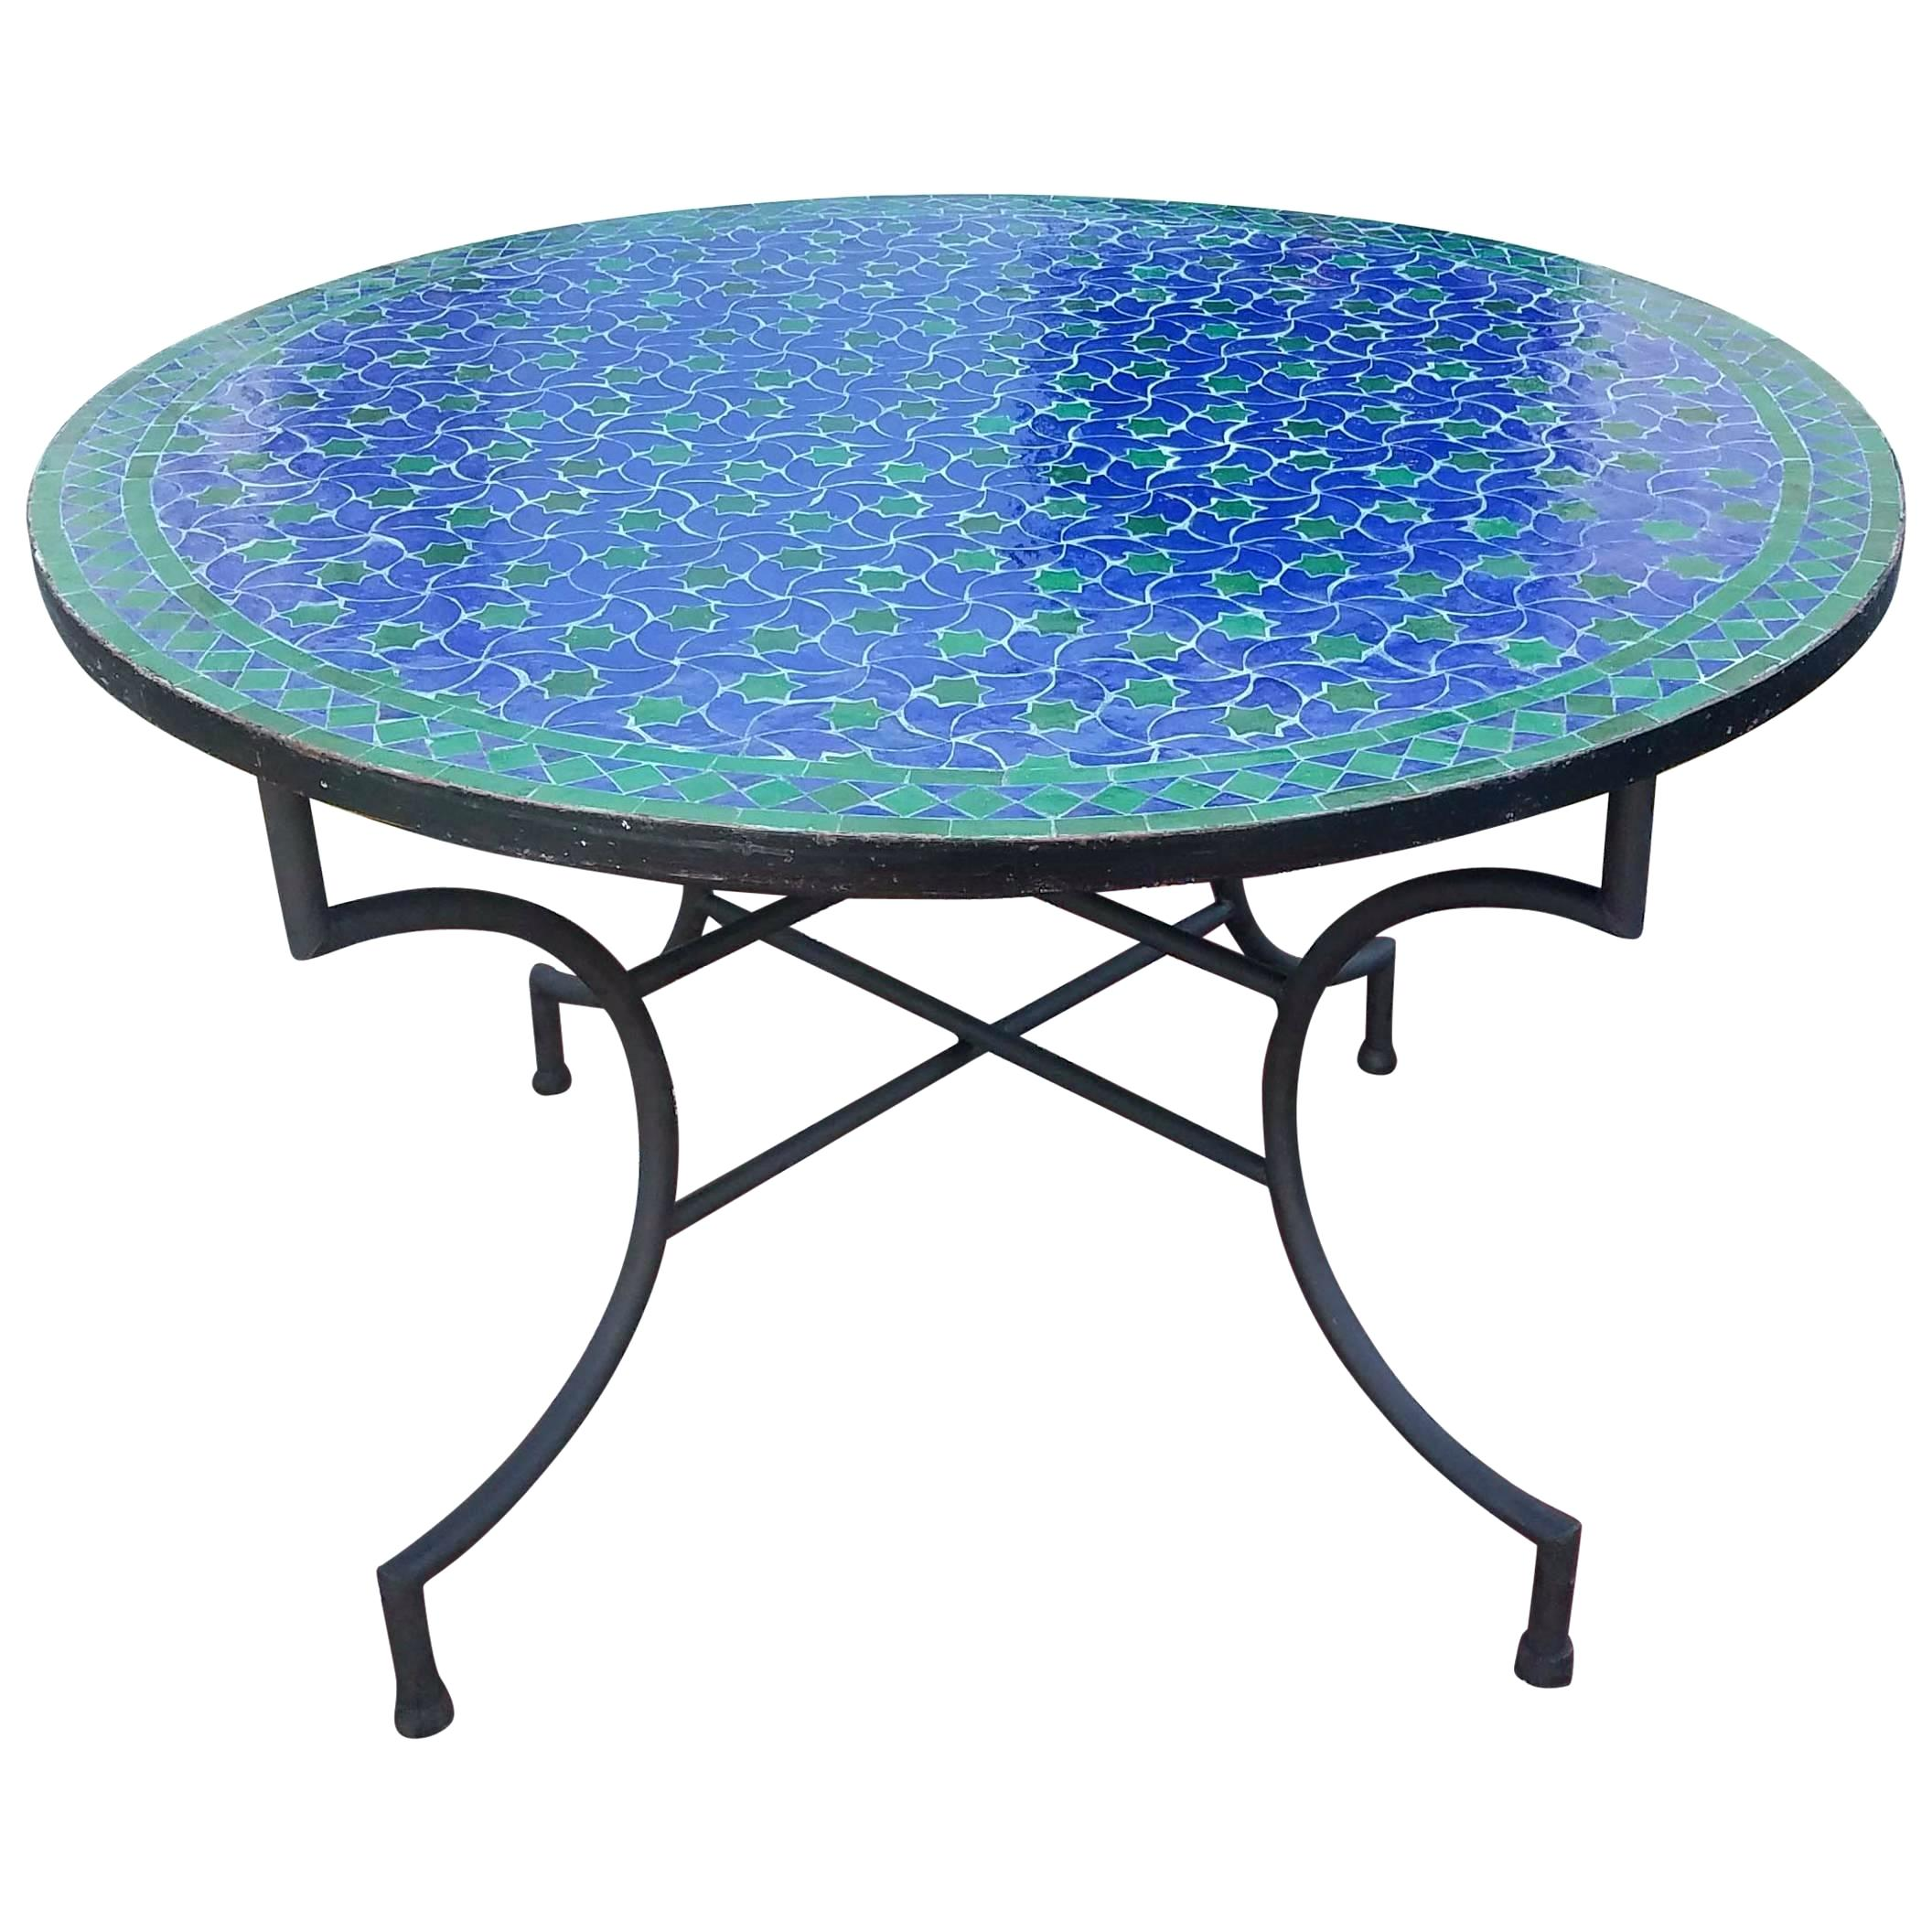 mosaic patterns for table tops what are the steps follow purchase round blue green tile top accent indoor white corner end leaf wood coffee wall hanging wine rack glass tables